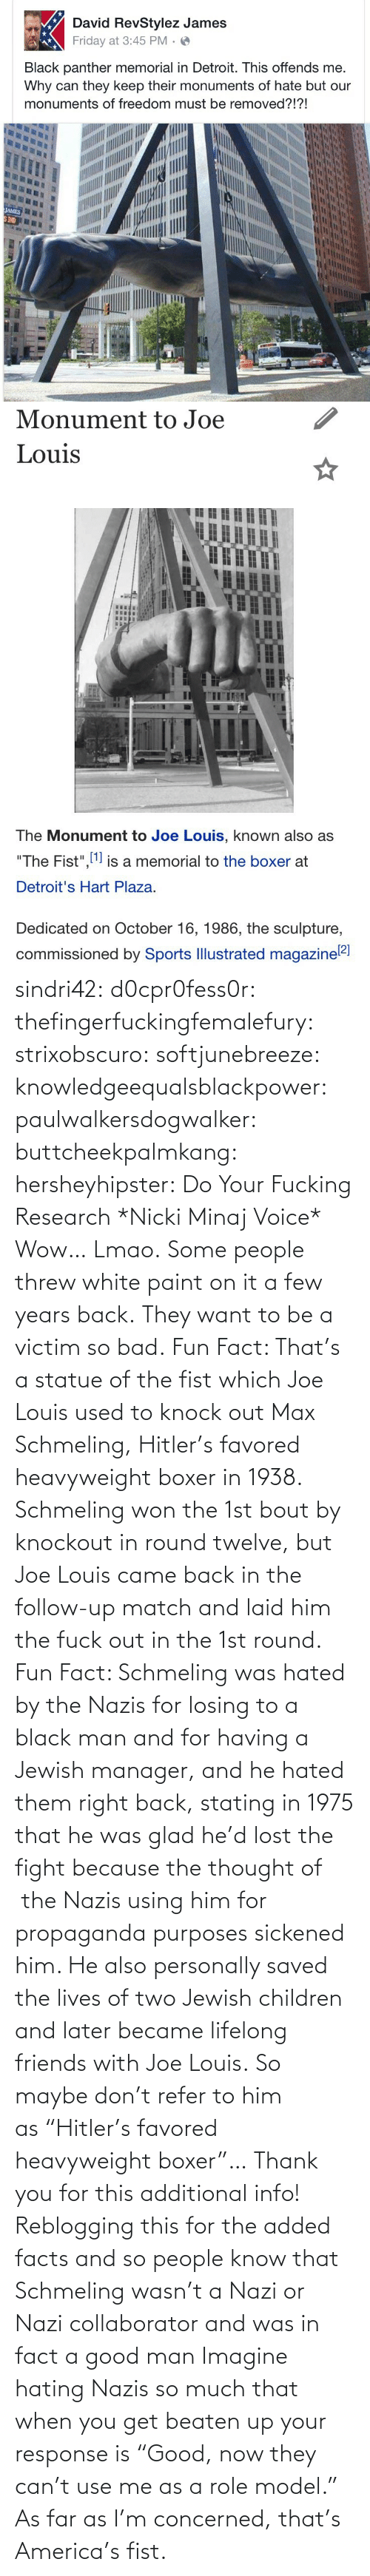 "Children: sindri42:  d0cpr0fess0r:  thefingerfuckingfemalefury:  strixobscuro:  softjunebreeze:  knowledgeequalsblackpower:  paulwalkersdogwalker:   buttcheekpalmkang:   hersheyhipster:  Do Your Fucking Research *Nicki Minaj Voice*    Wow… Lmao.   Some people threw white paint on it a few years back.   They want to be a victim so bad.  Fun Fact: That's a statue of the fist which Joe Louis used to knock out Max Schmeling, Hitler's favored heavyweight boxer in 1938. Schmeling won the 1st bout by knockout in round twelve, but Joe Louis came back in the follow-up match and laid him the fuck out in the 1st round.  Fun Fact: Schmeling was hated by the Nazis for losing to a black man and for having a Jewish manager, and he hated them right back, stating in 1975 that he was glad he'd lost the fight because the thought of  the Nazis using him for propaganda purposes sickened him. He also personally saved the lives of two Jewish children and later became lifelong friends with Joe Louis. So maybe don't refer to him as ""Hitler's favored heavyweight boxer""…  Thank you for this additional info! Reblogging this for the added facts and so people know that Schmeling wasn't a Nazi or Nazi collaborator and was in fact a good man   Imagine hating Nazis so much that when you get beaten up your response is ""Good, now they can't use me as a role model.""  As far as I'm concerned, that's America's fist."